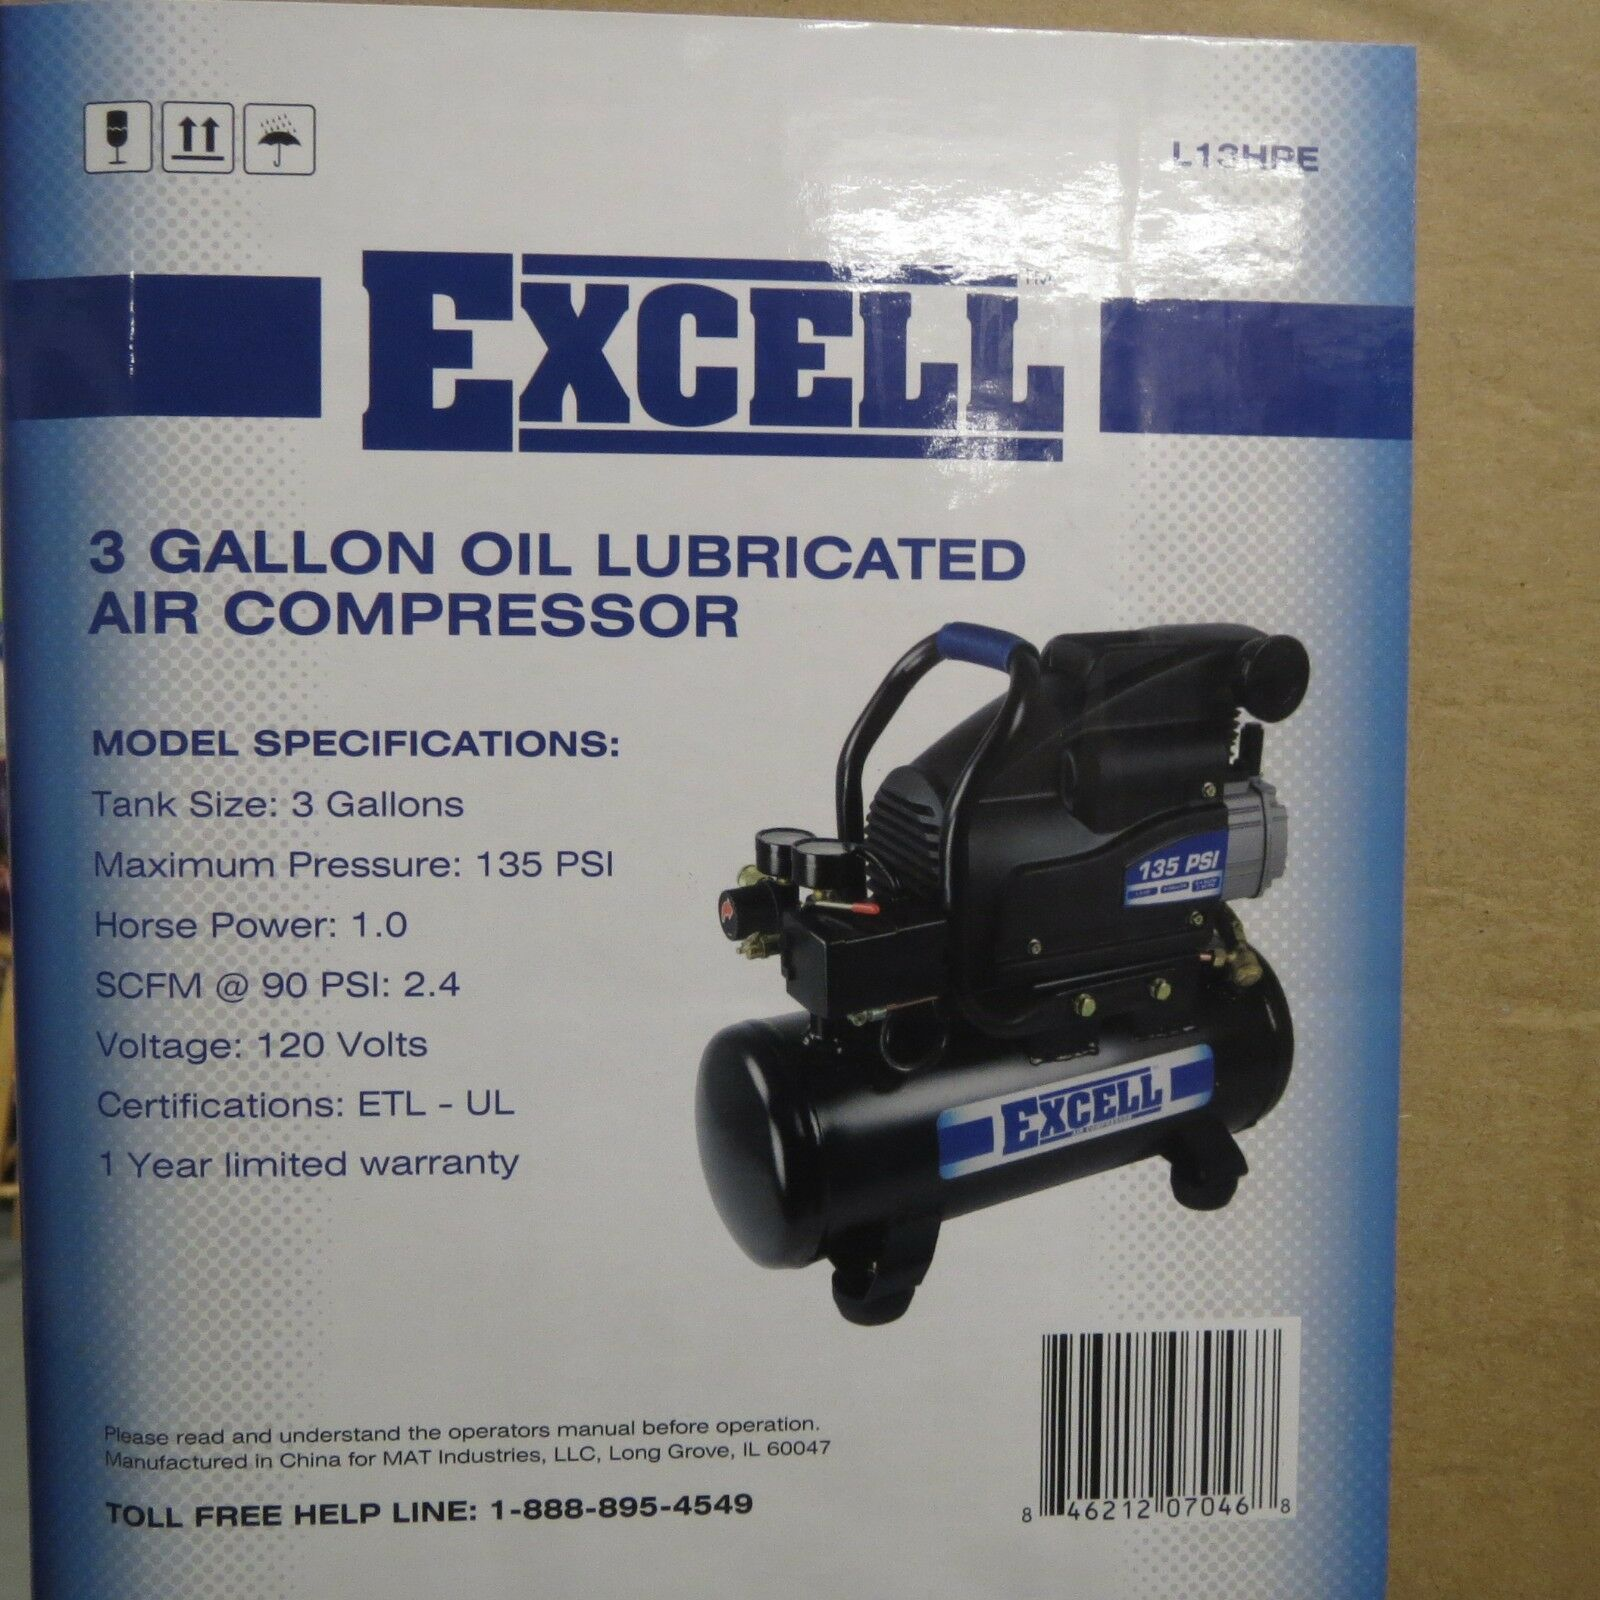 Excell L13HPE 3 Gallon Oil Lubricated Portable Air Compressor